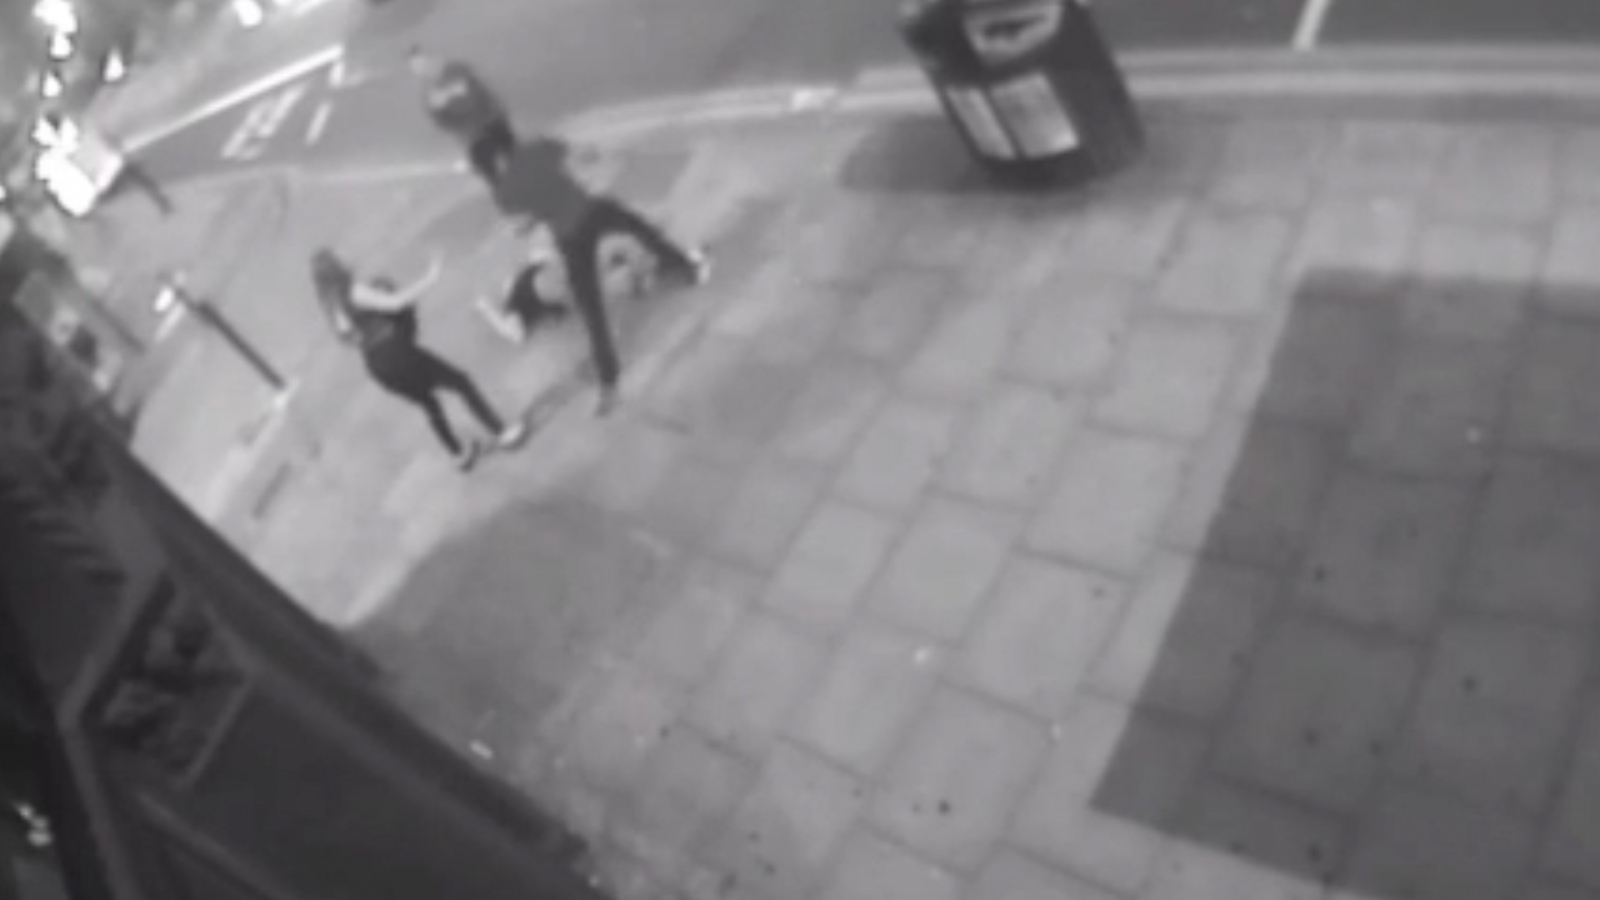 police-appeal-for-information-on-cyclist-who-seriously-assaulted-group-of-people-on-city-road